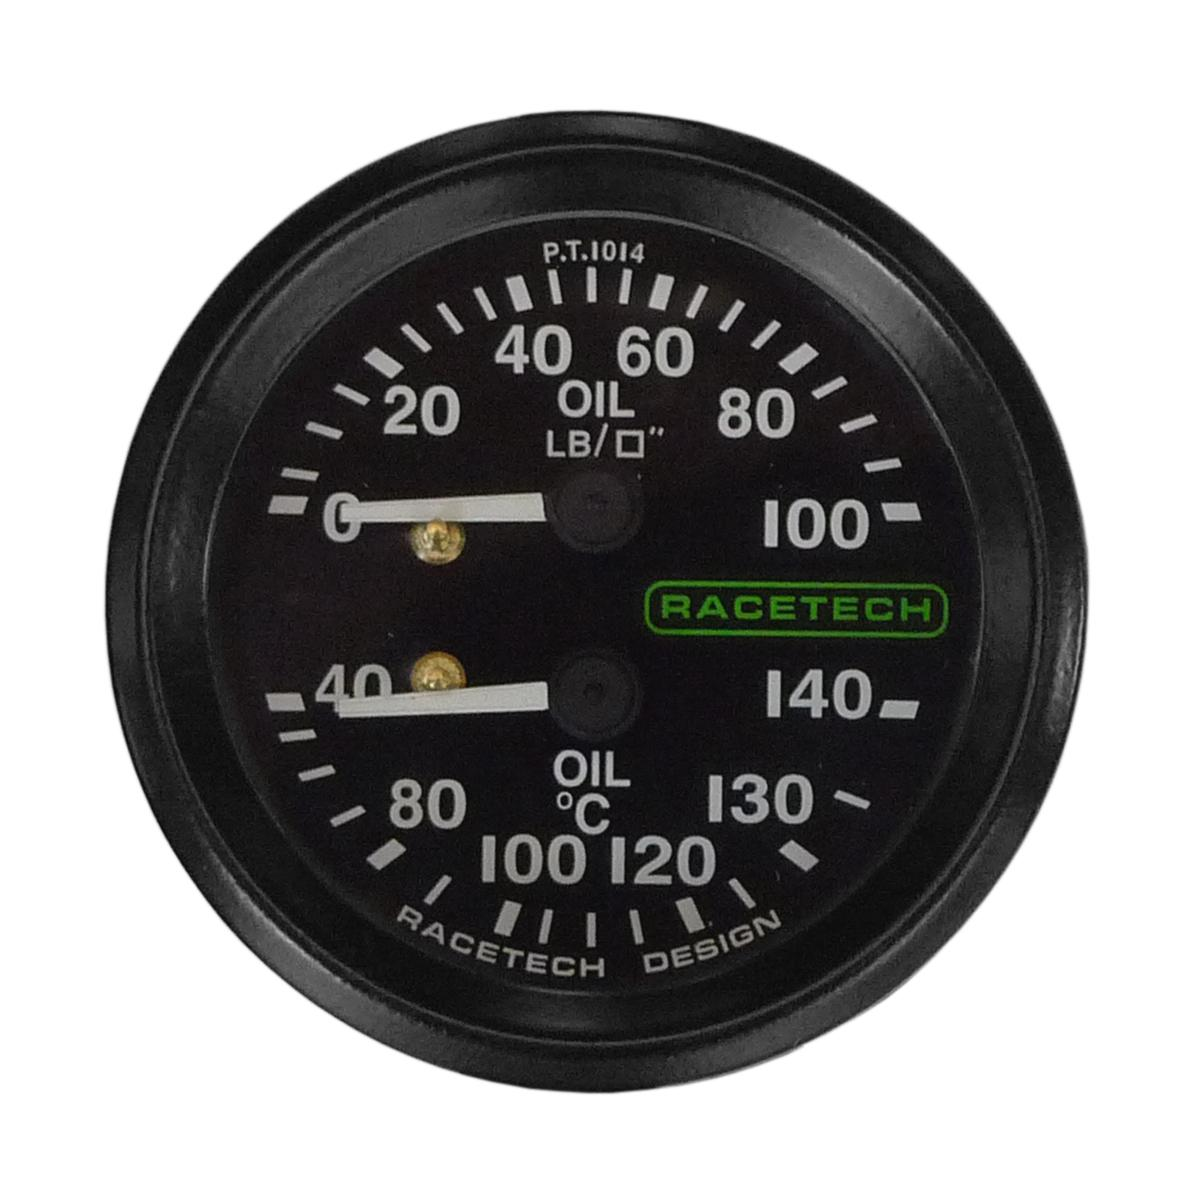 How to Install an Oil Pressure Gauge